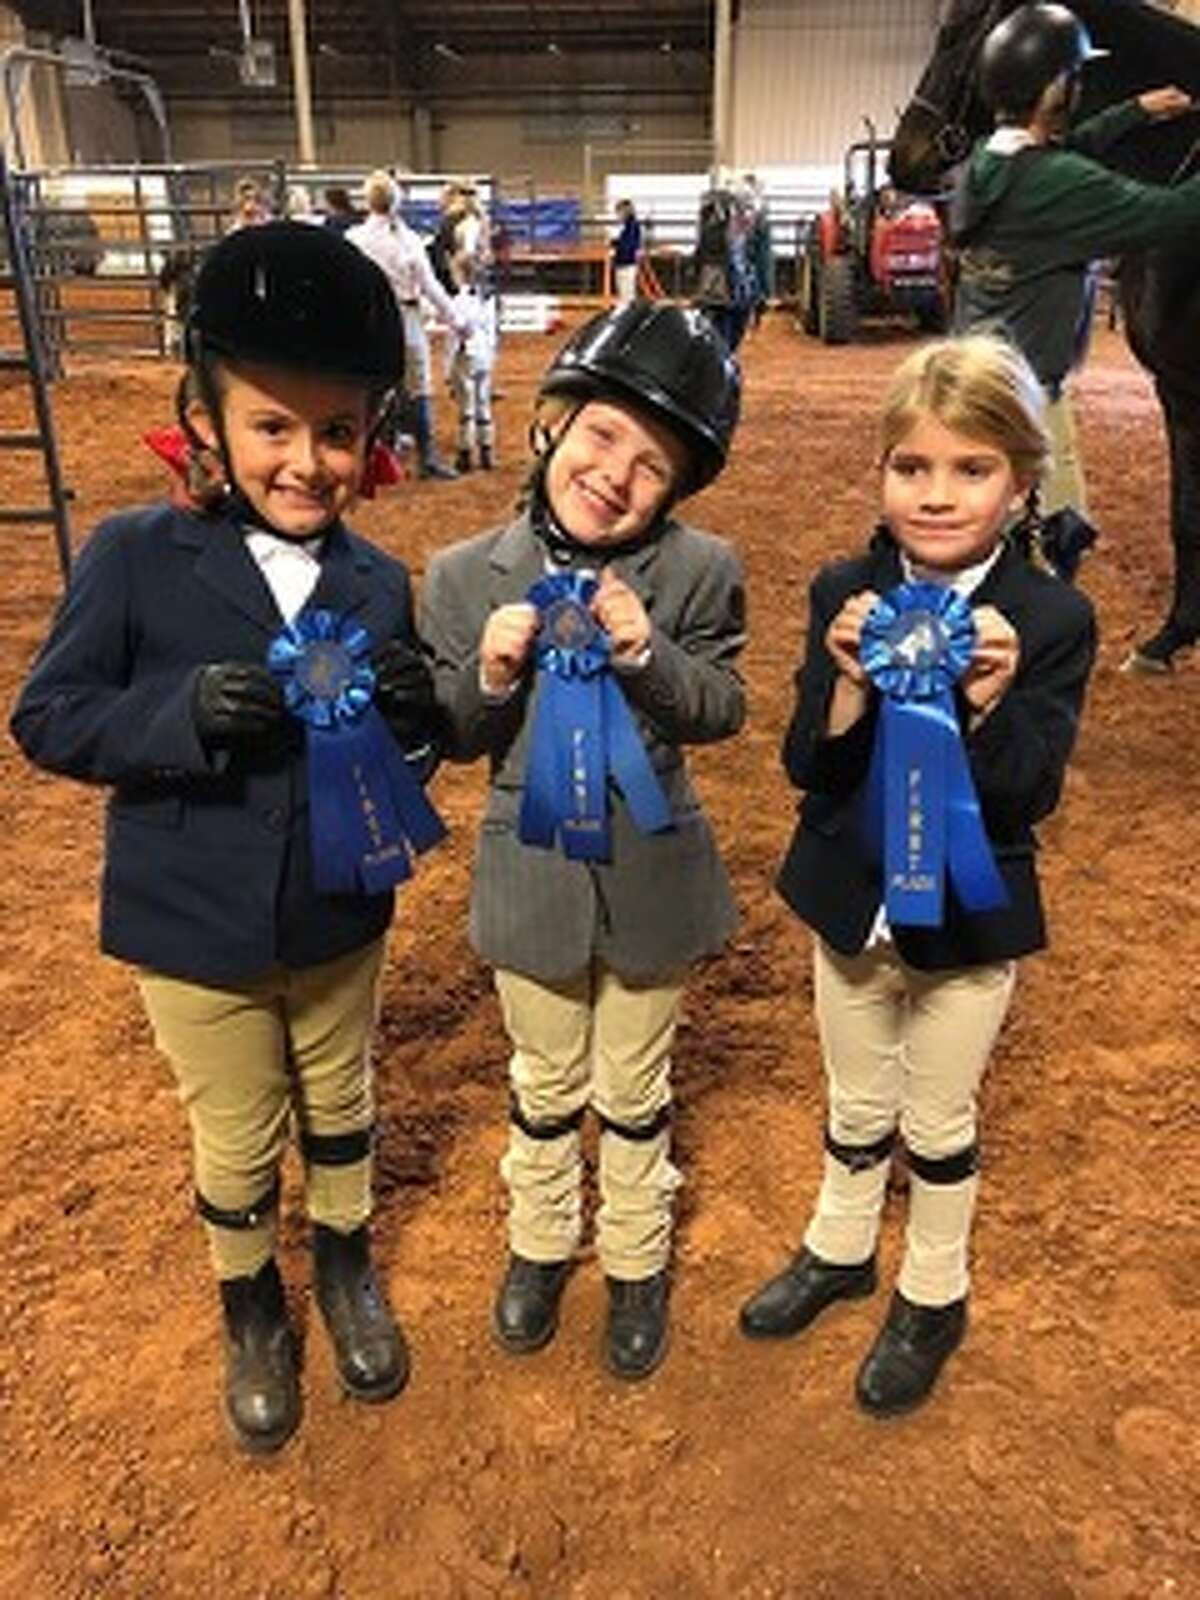 Horse show: Jillian Betton, from left, Charlie Maher and Vivianne Gaynor